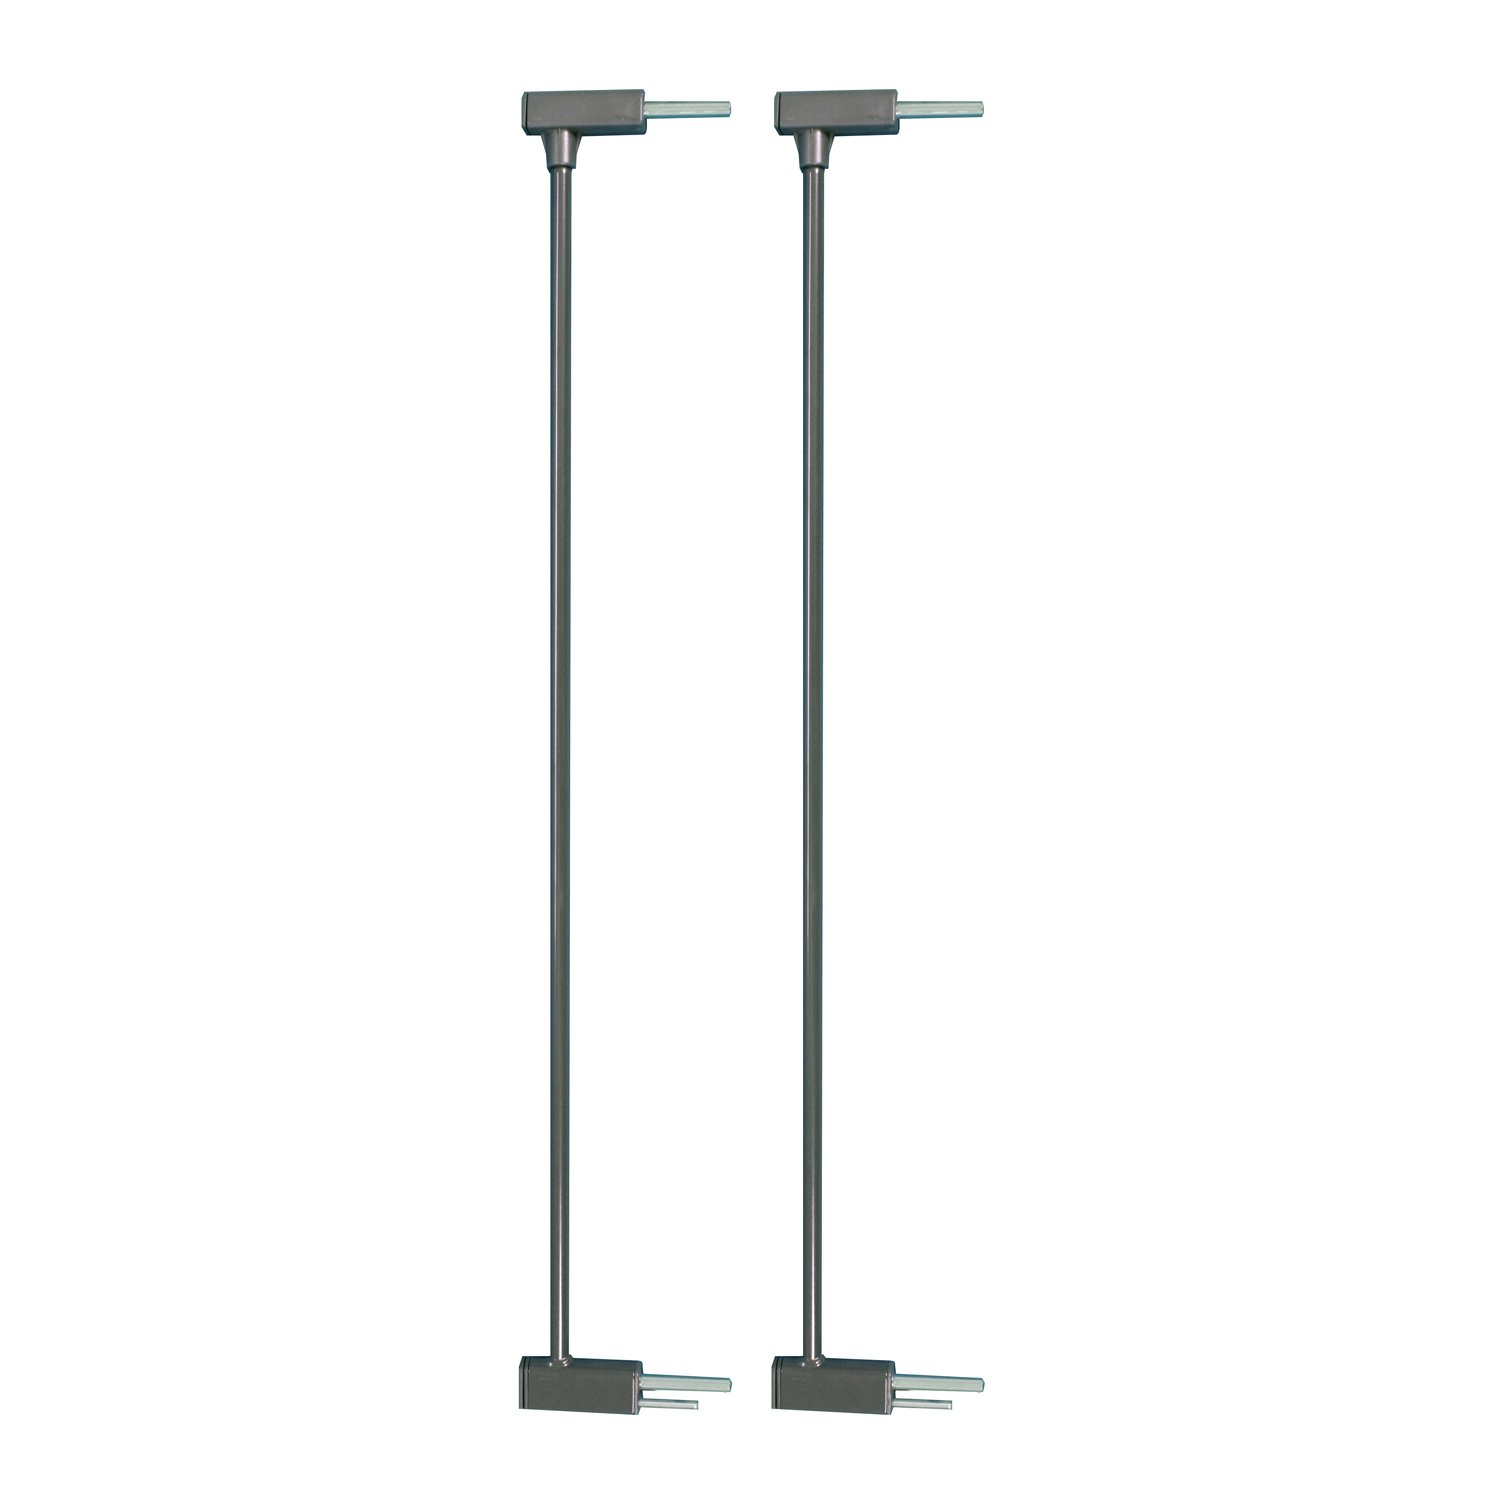 "QDOS AUTO-CLOSE SAFEGATE BABY GATE EXTENSIONS – Professional Grade Safety - Extends the Qdos SafeGate Pressure Gates by 2.75"" with each extension - Easy Installation 